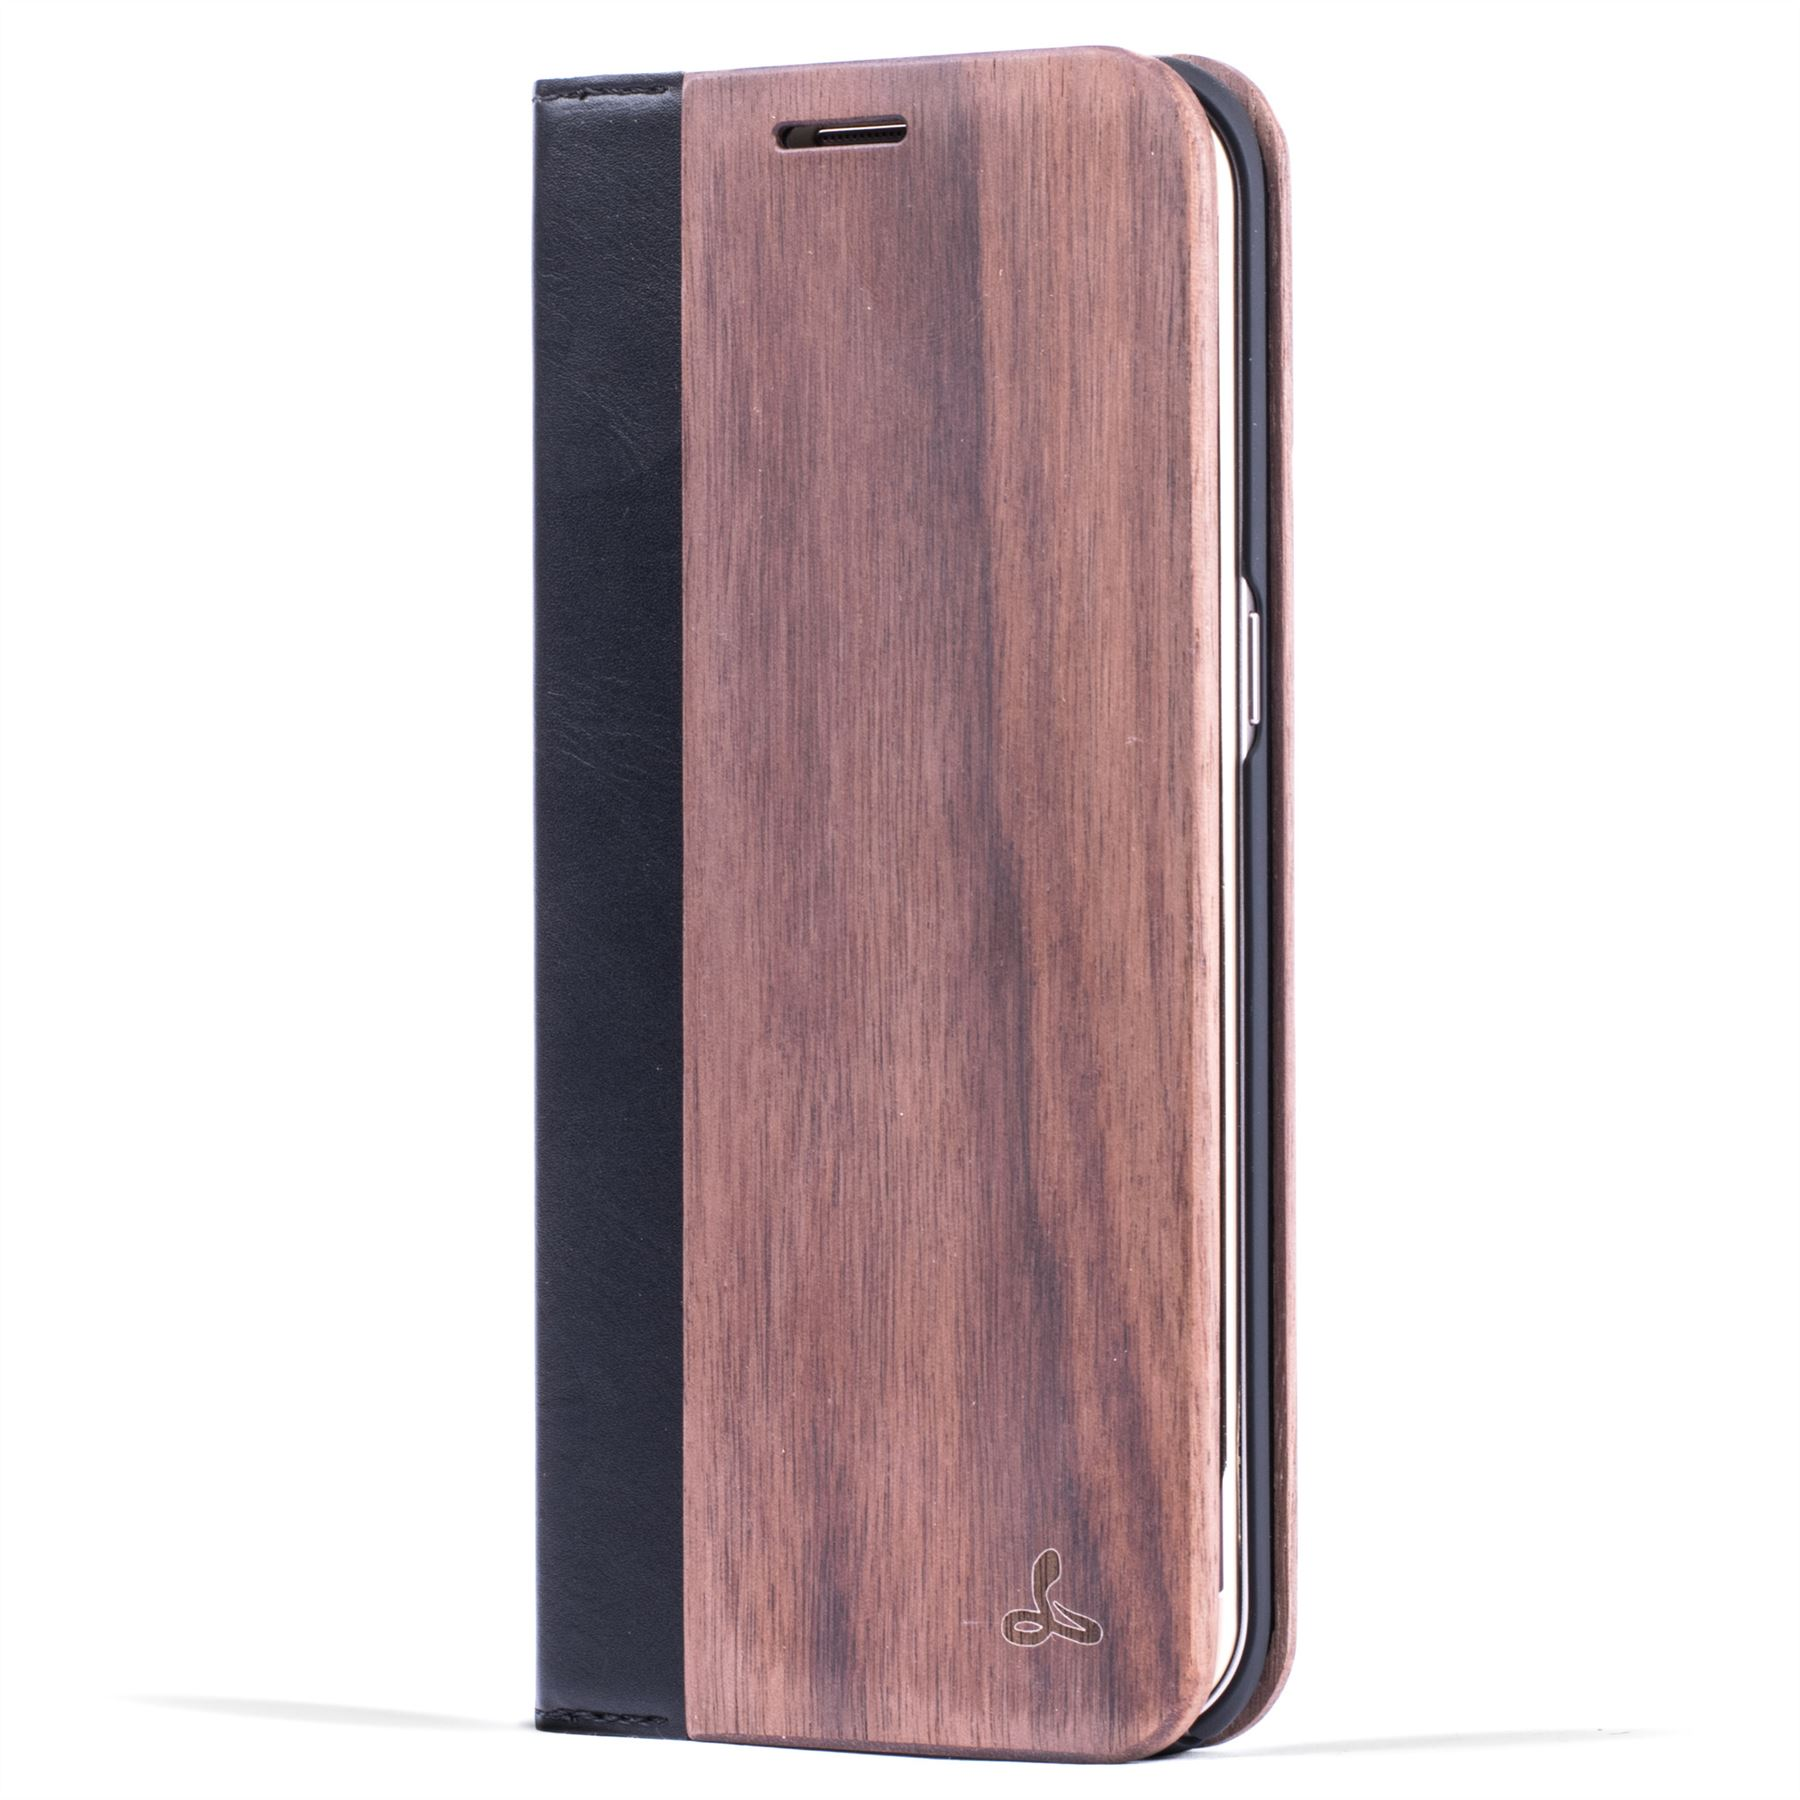 Details About Snakehive Samsung Galaxy S7 Edge Natural Wood Leather Phone Folio Wallet Case